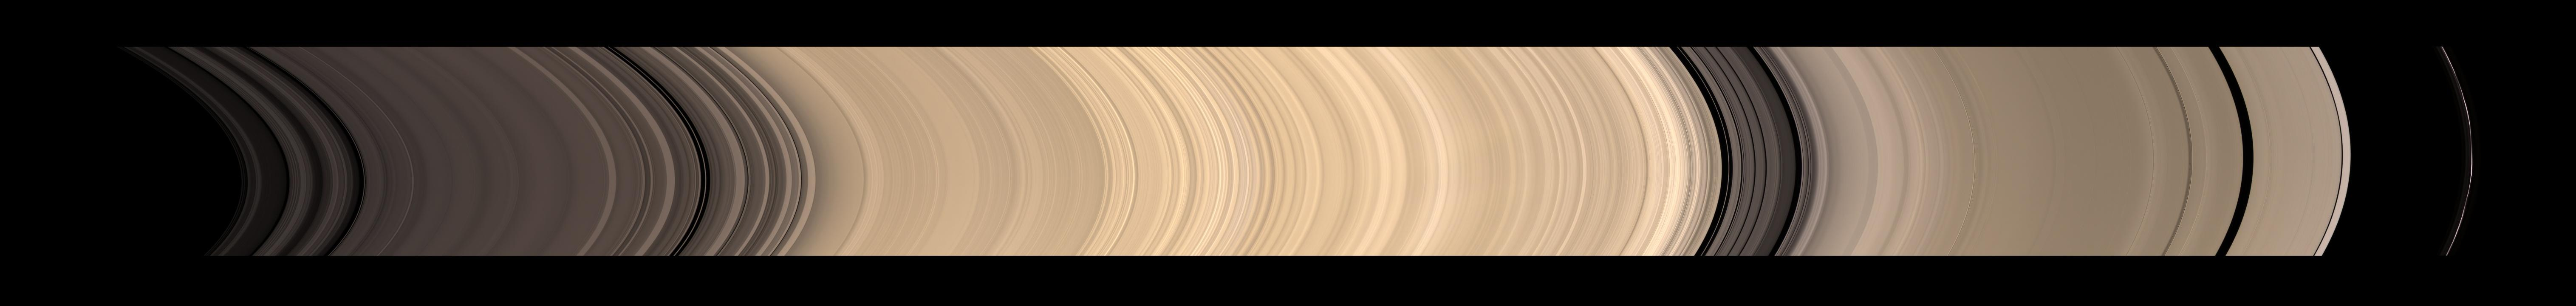 Saturn's rings, in a mosaic constructed from 45 images